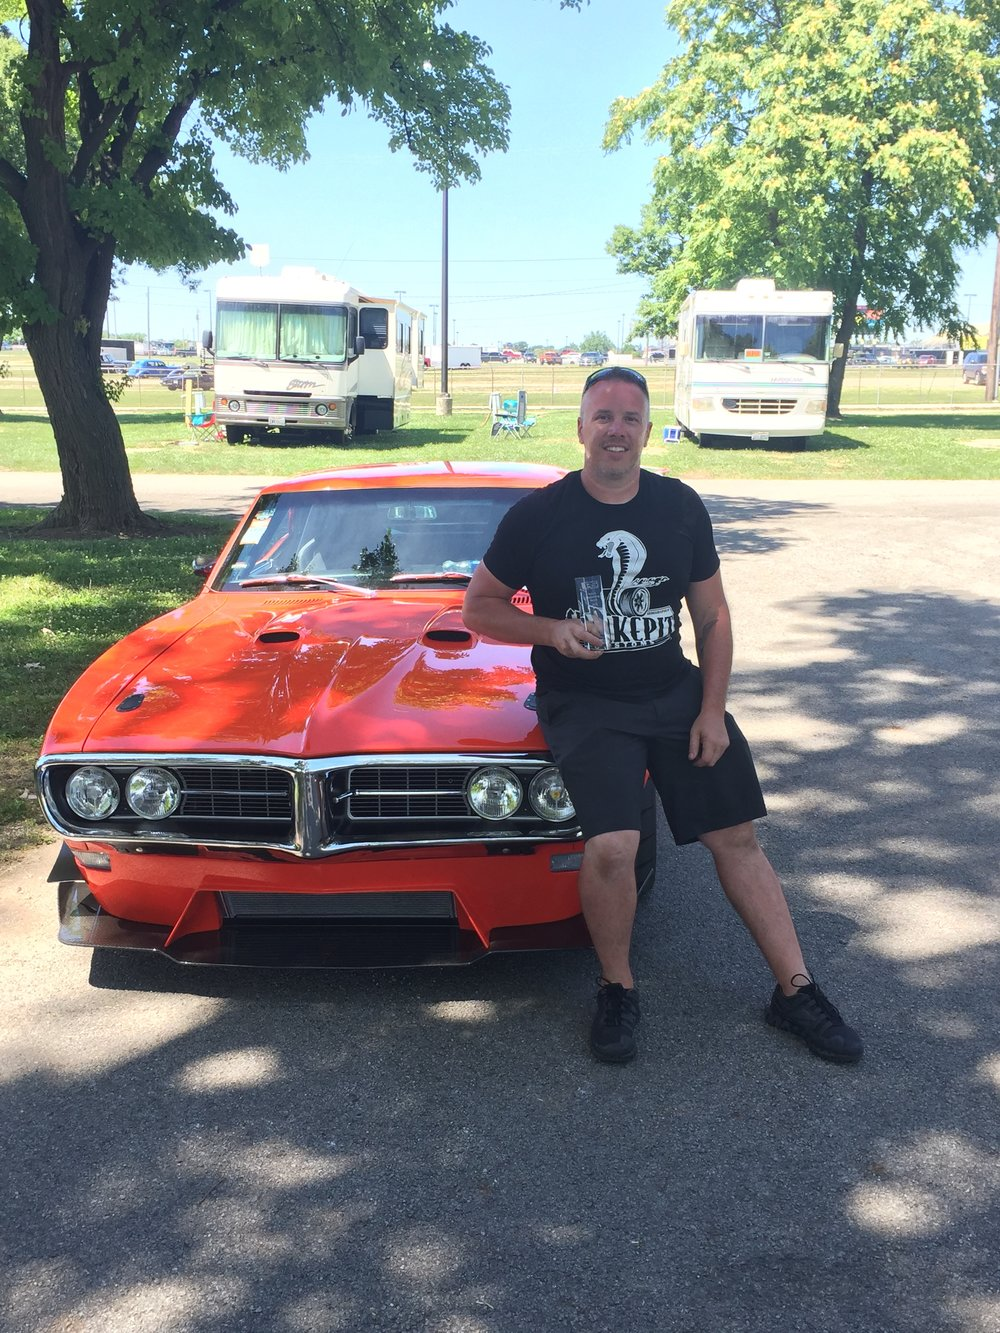 Damon Sturrock after winnig the the Style and Engineering Builder Choice Top 10 Award at the Columbus Goodguys PPG Nationals in 2018 with Project Oculus.